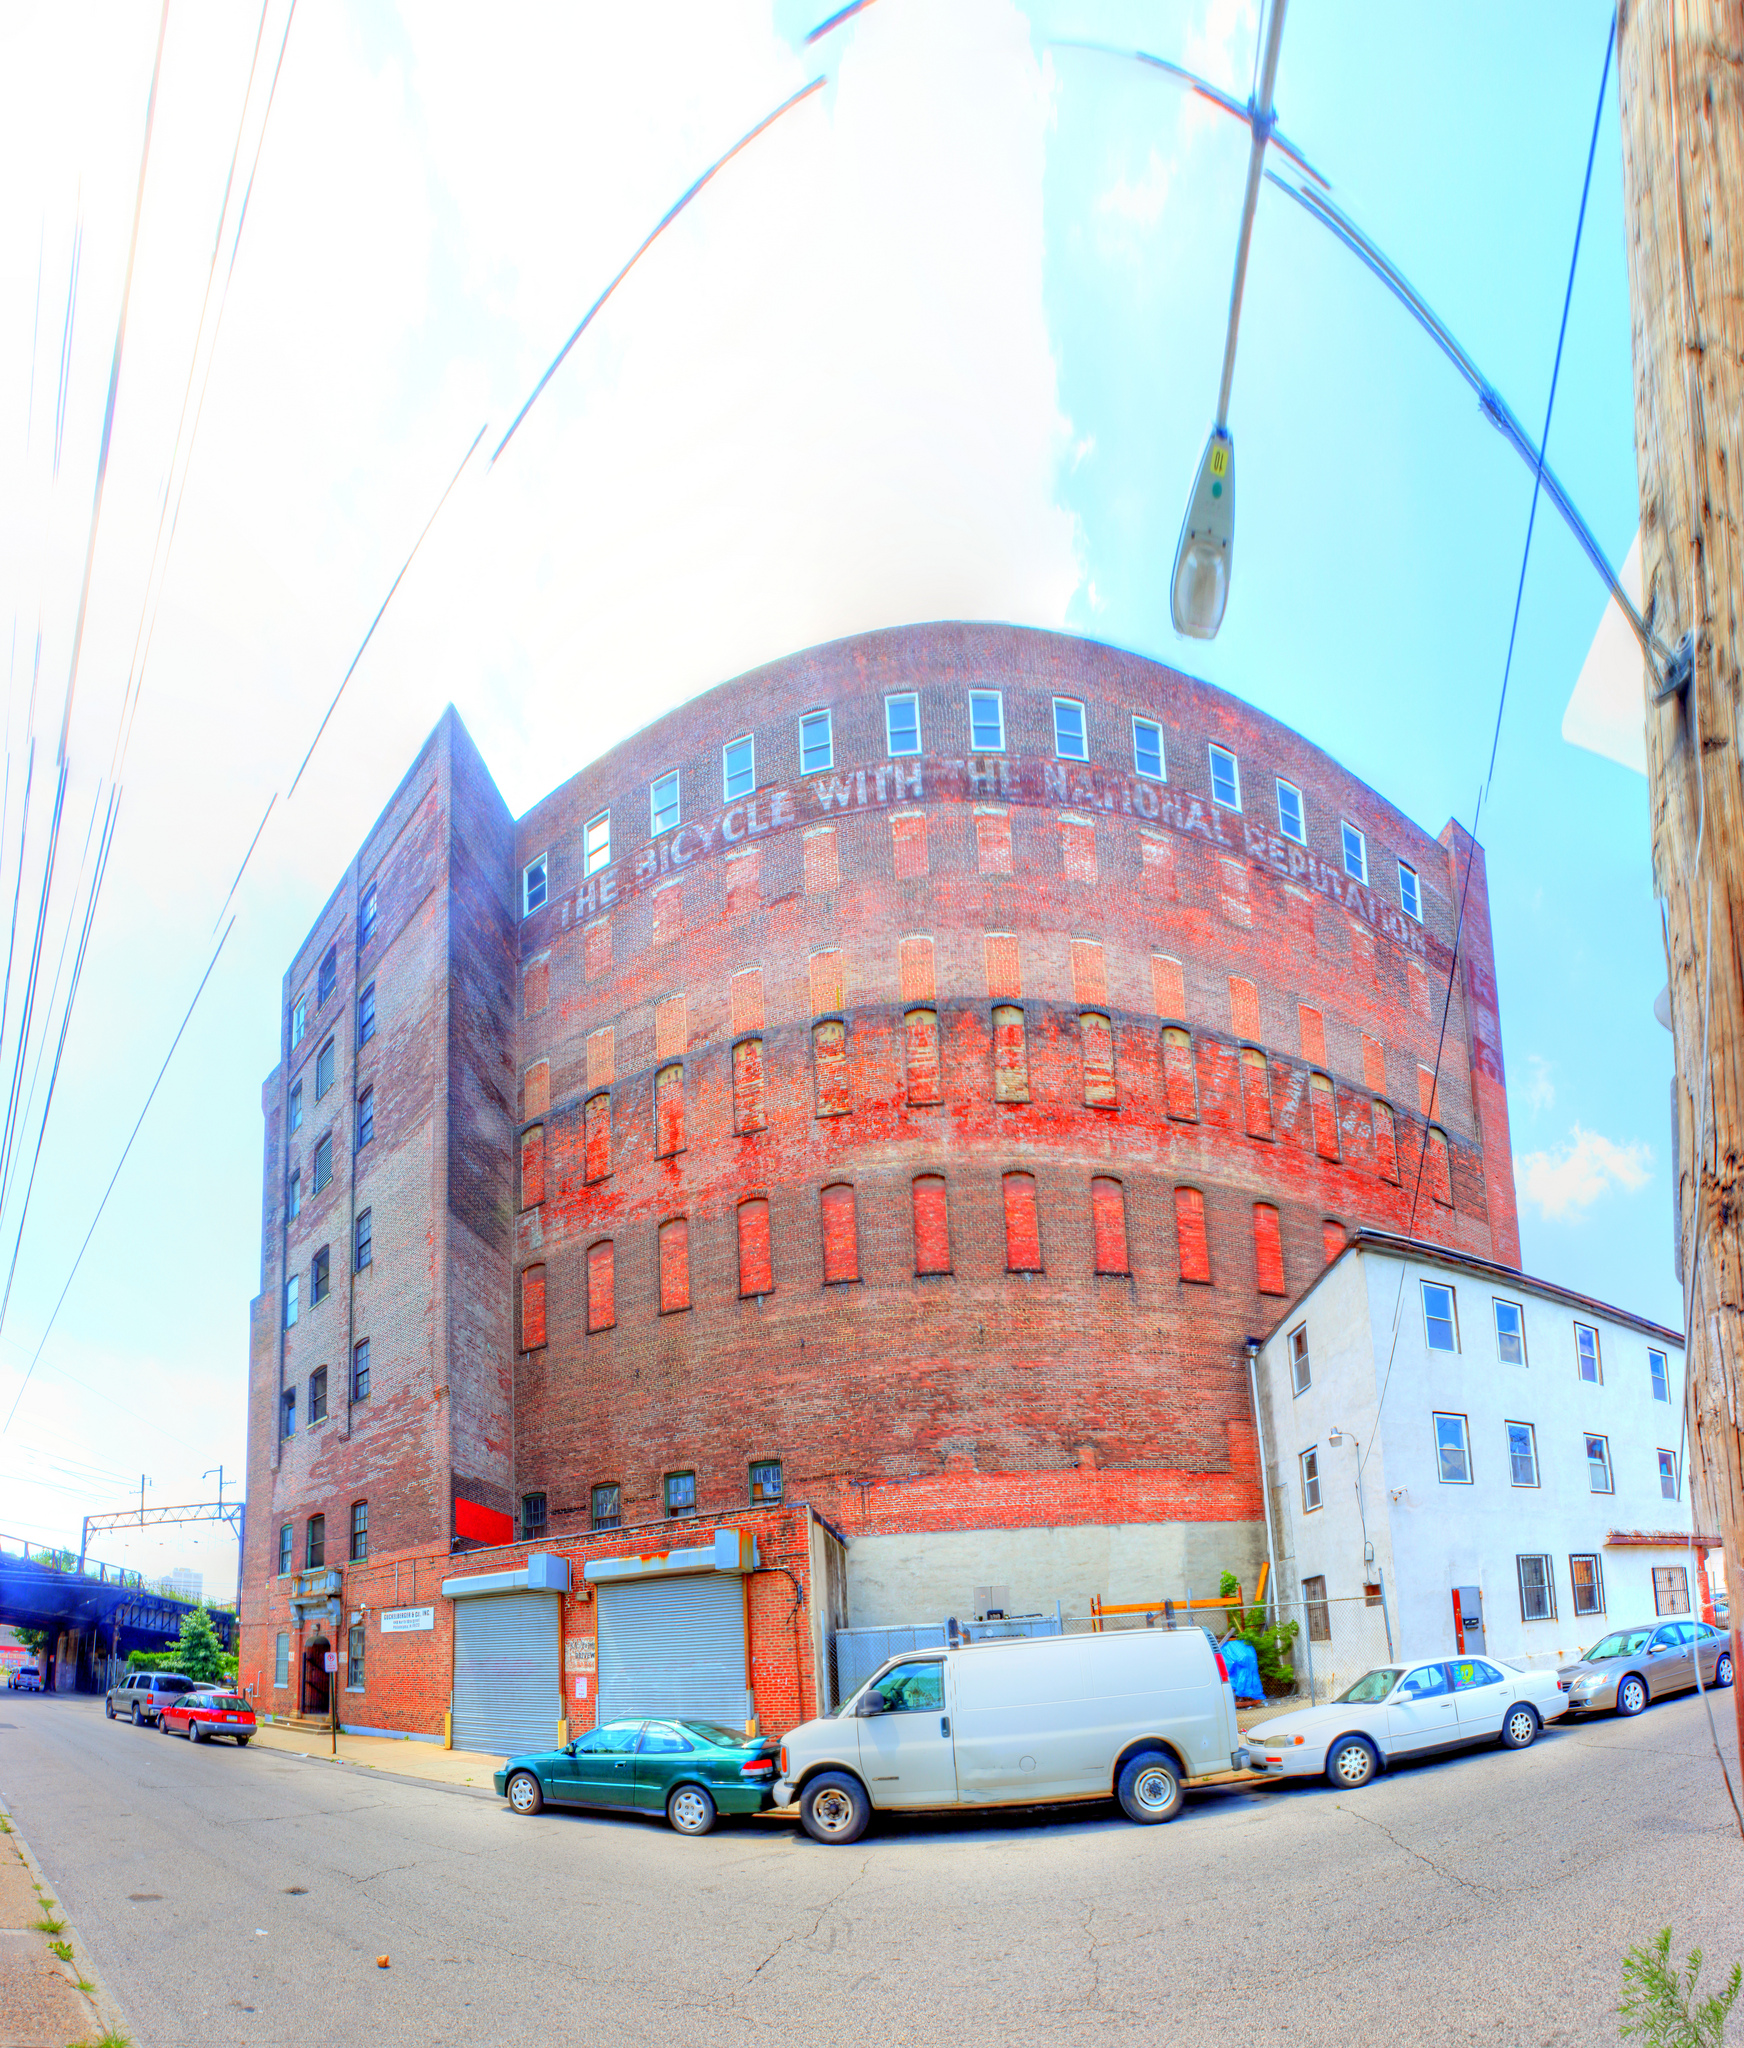 Panorama 2336_blended_fused_pregamma_1_fattal_alpha_1_beta_0.9_saturation_1_noiseredux_0_fftsolver_1 small